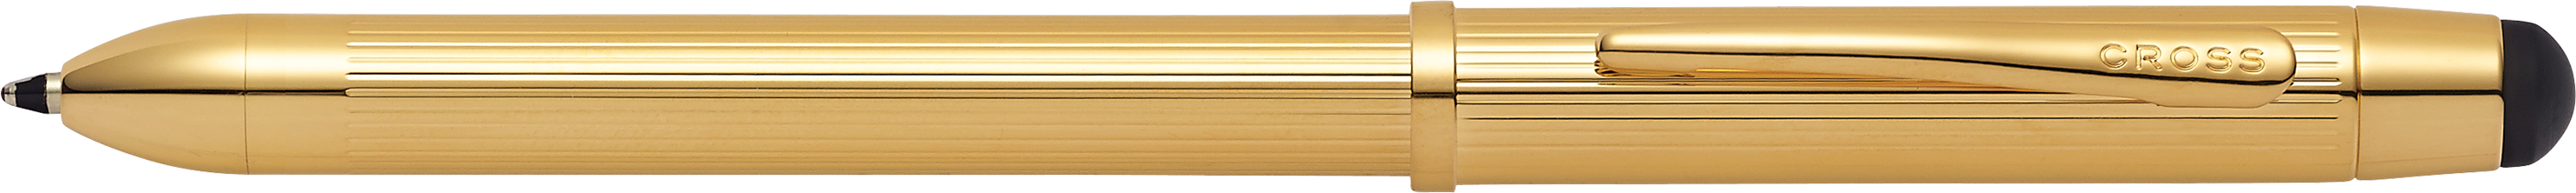 Tech3+ 23KT Gold Plated Multifunction Pen